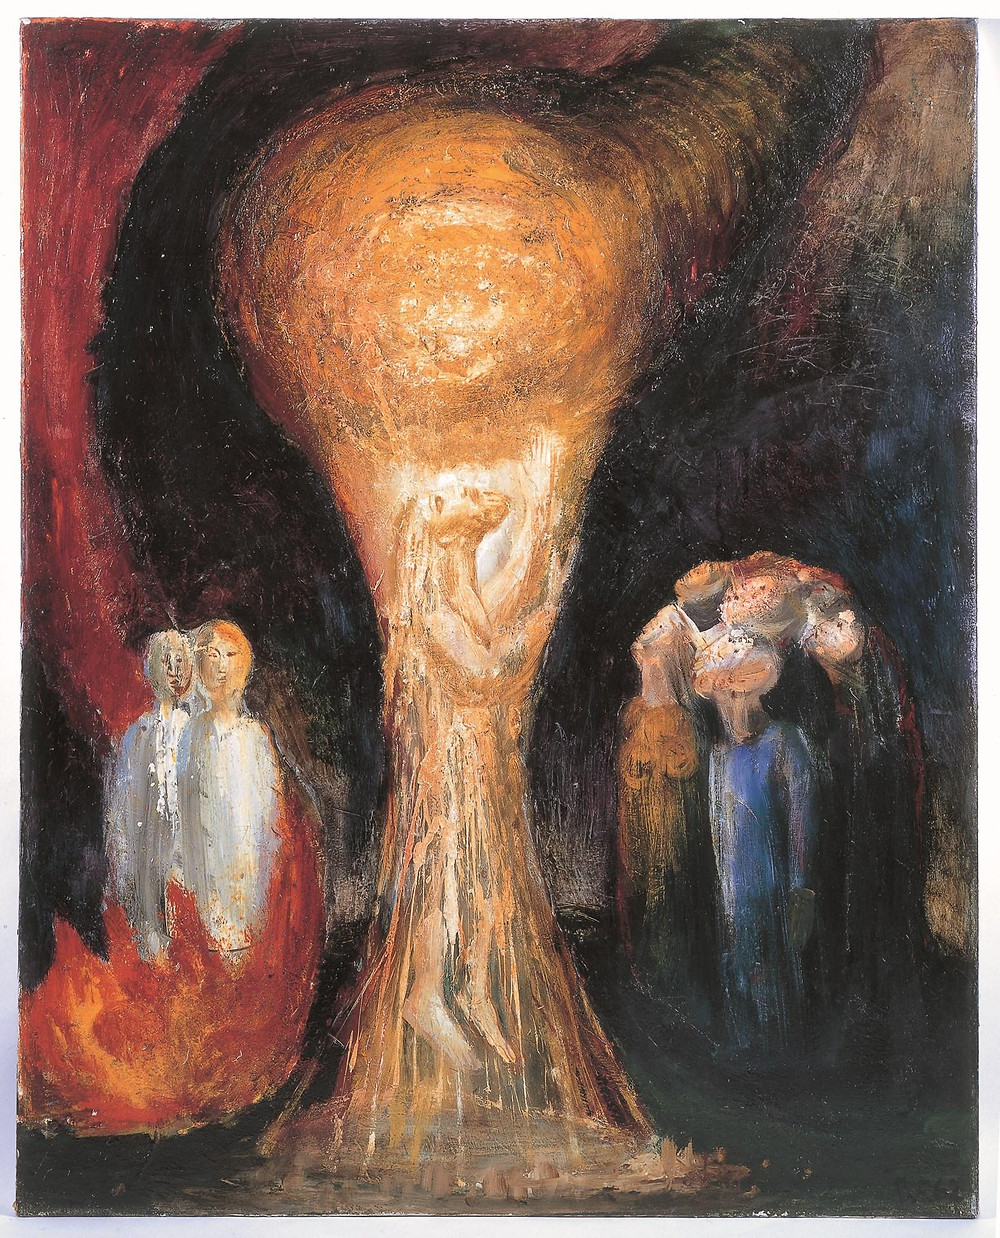 Peter Rogers' painting of the Ascension